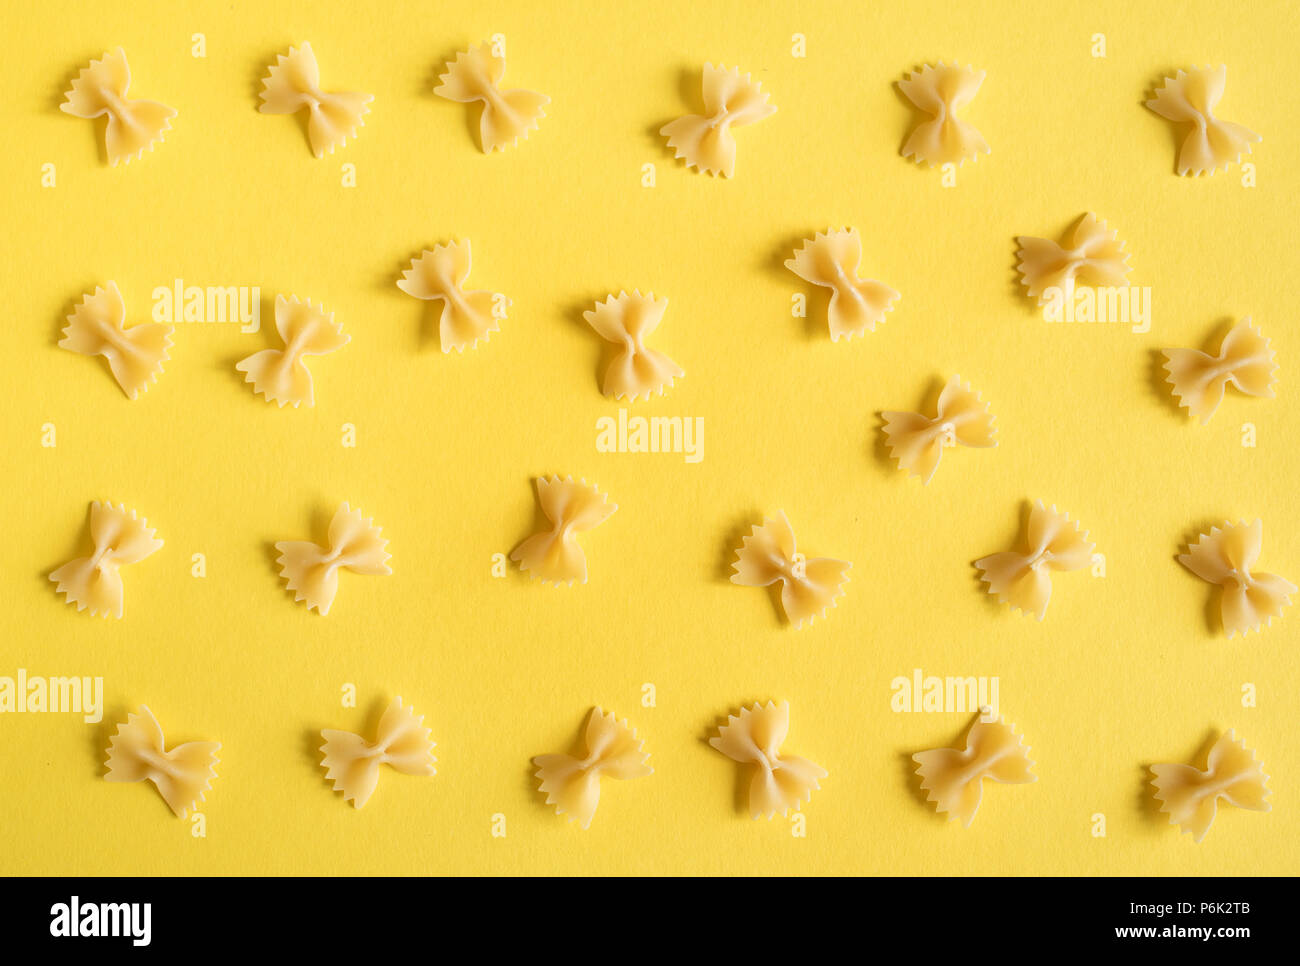 Farfalle Pasta on yellow background, top view, flat lay. - Stock Image